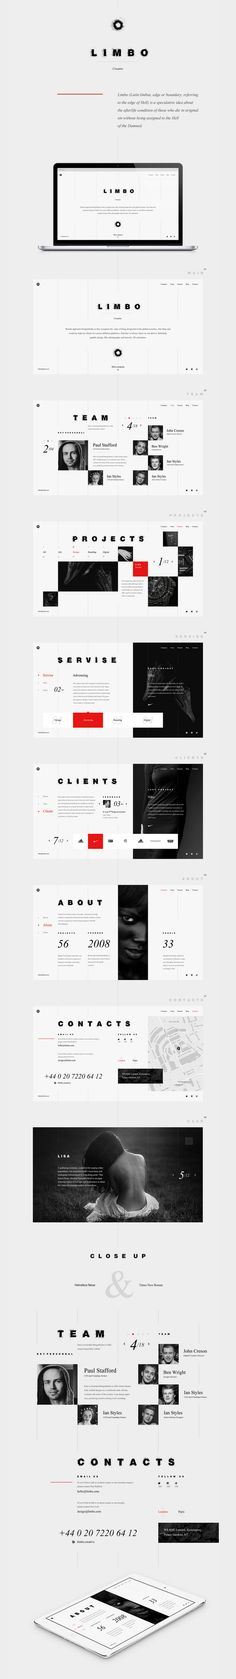 L I M B O - web design by Dmitry Kolesnikov - #web #behance